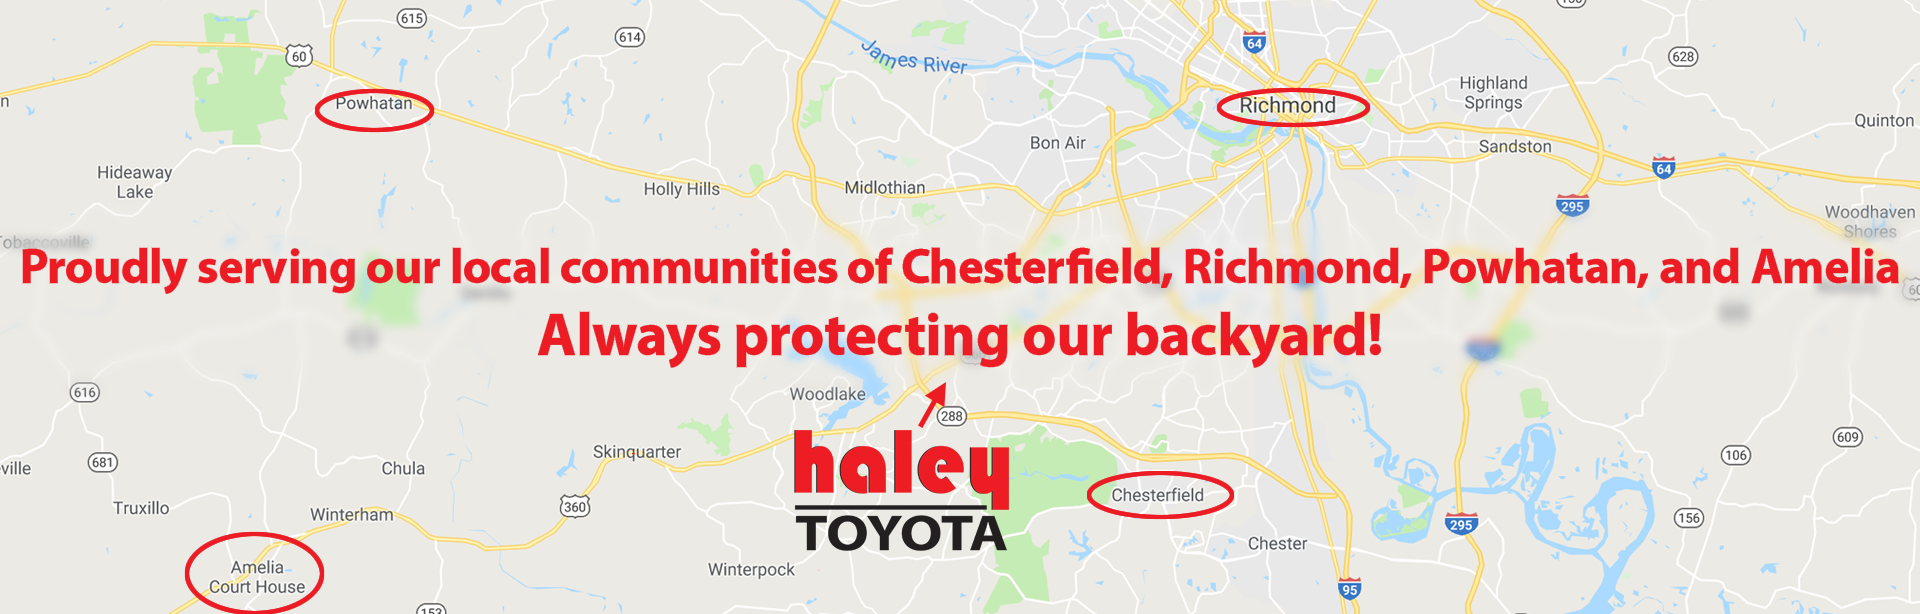 haley toyota, location, chesterfield, richmond, powhatan, amelia, toyota, dealership, always protecting our backyard, communities